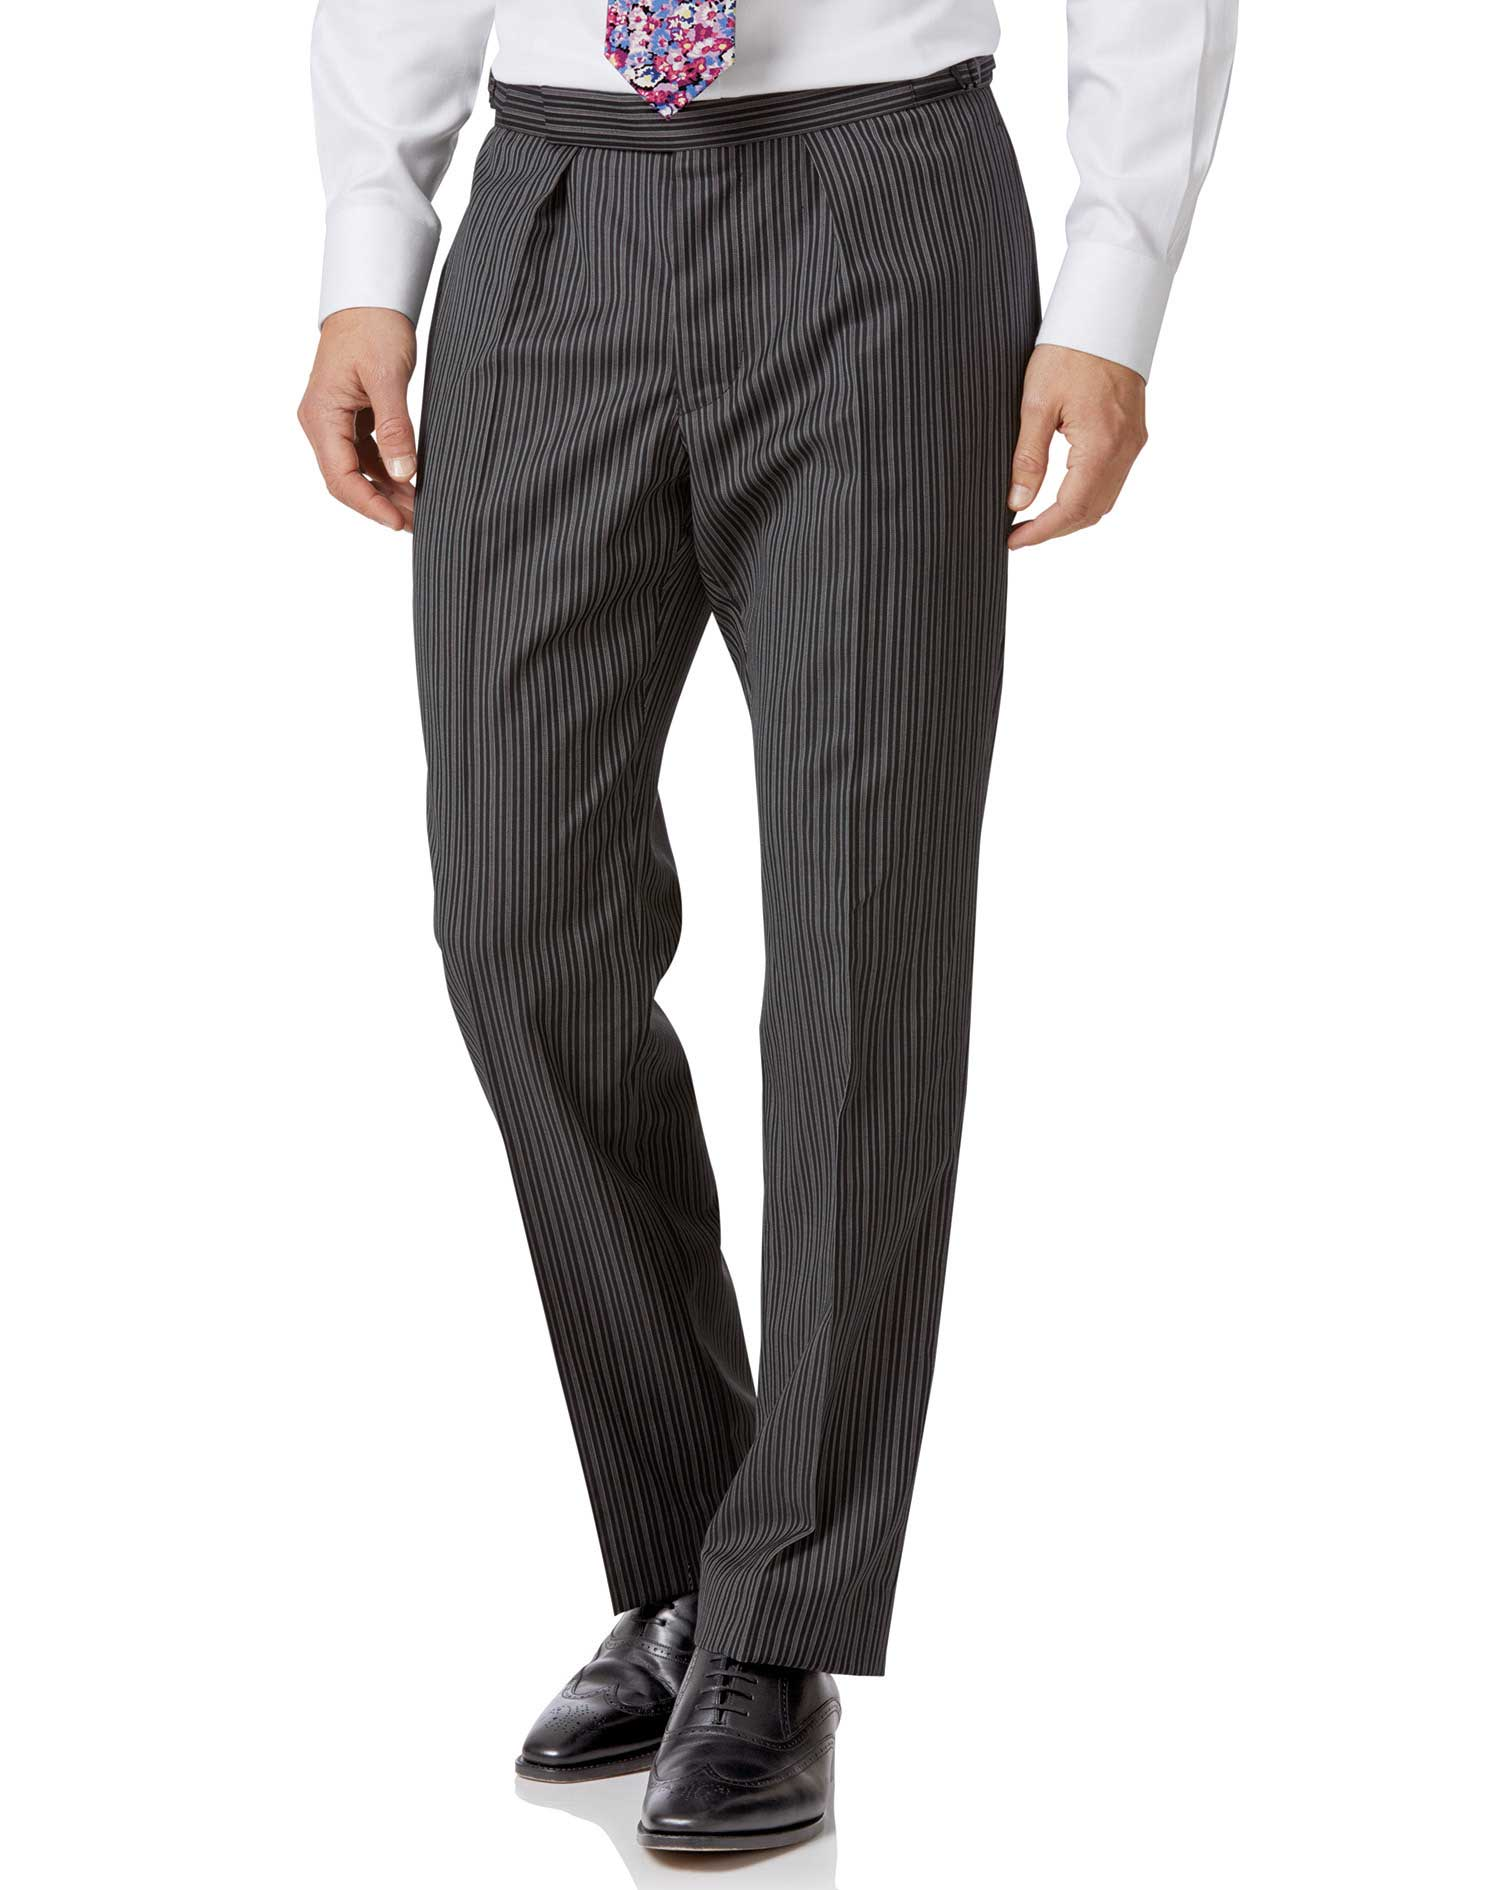 Black Stripe Classic Fit Morning Suit Trousers Size 38/32 by Charles Tyrwhitt